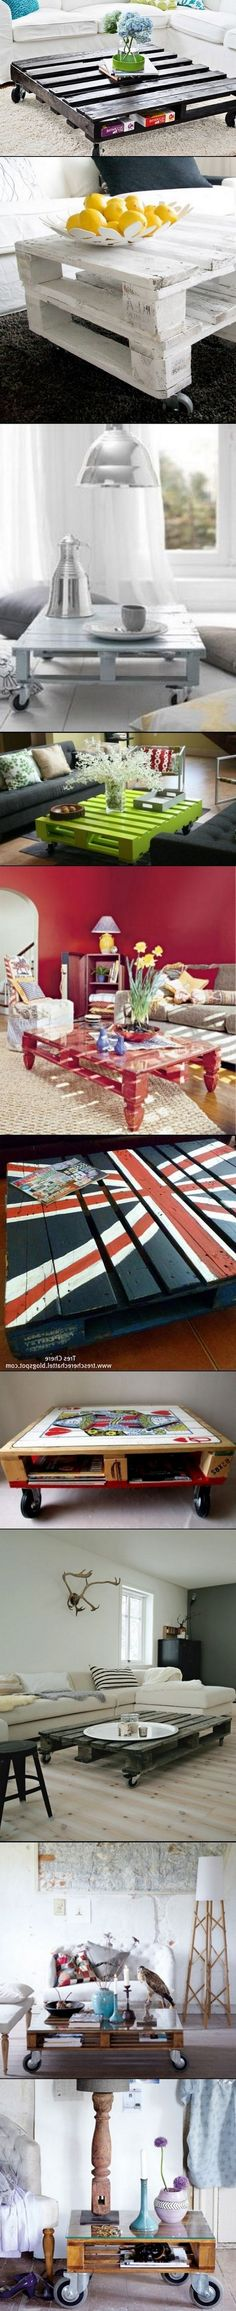 DIY Home decor Tables Casters, Pallets, Painted, Stained, English flag.